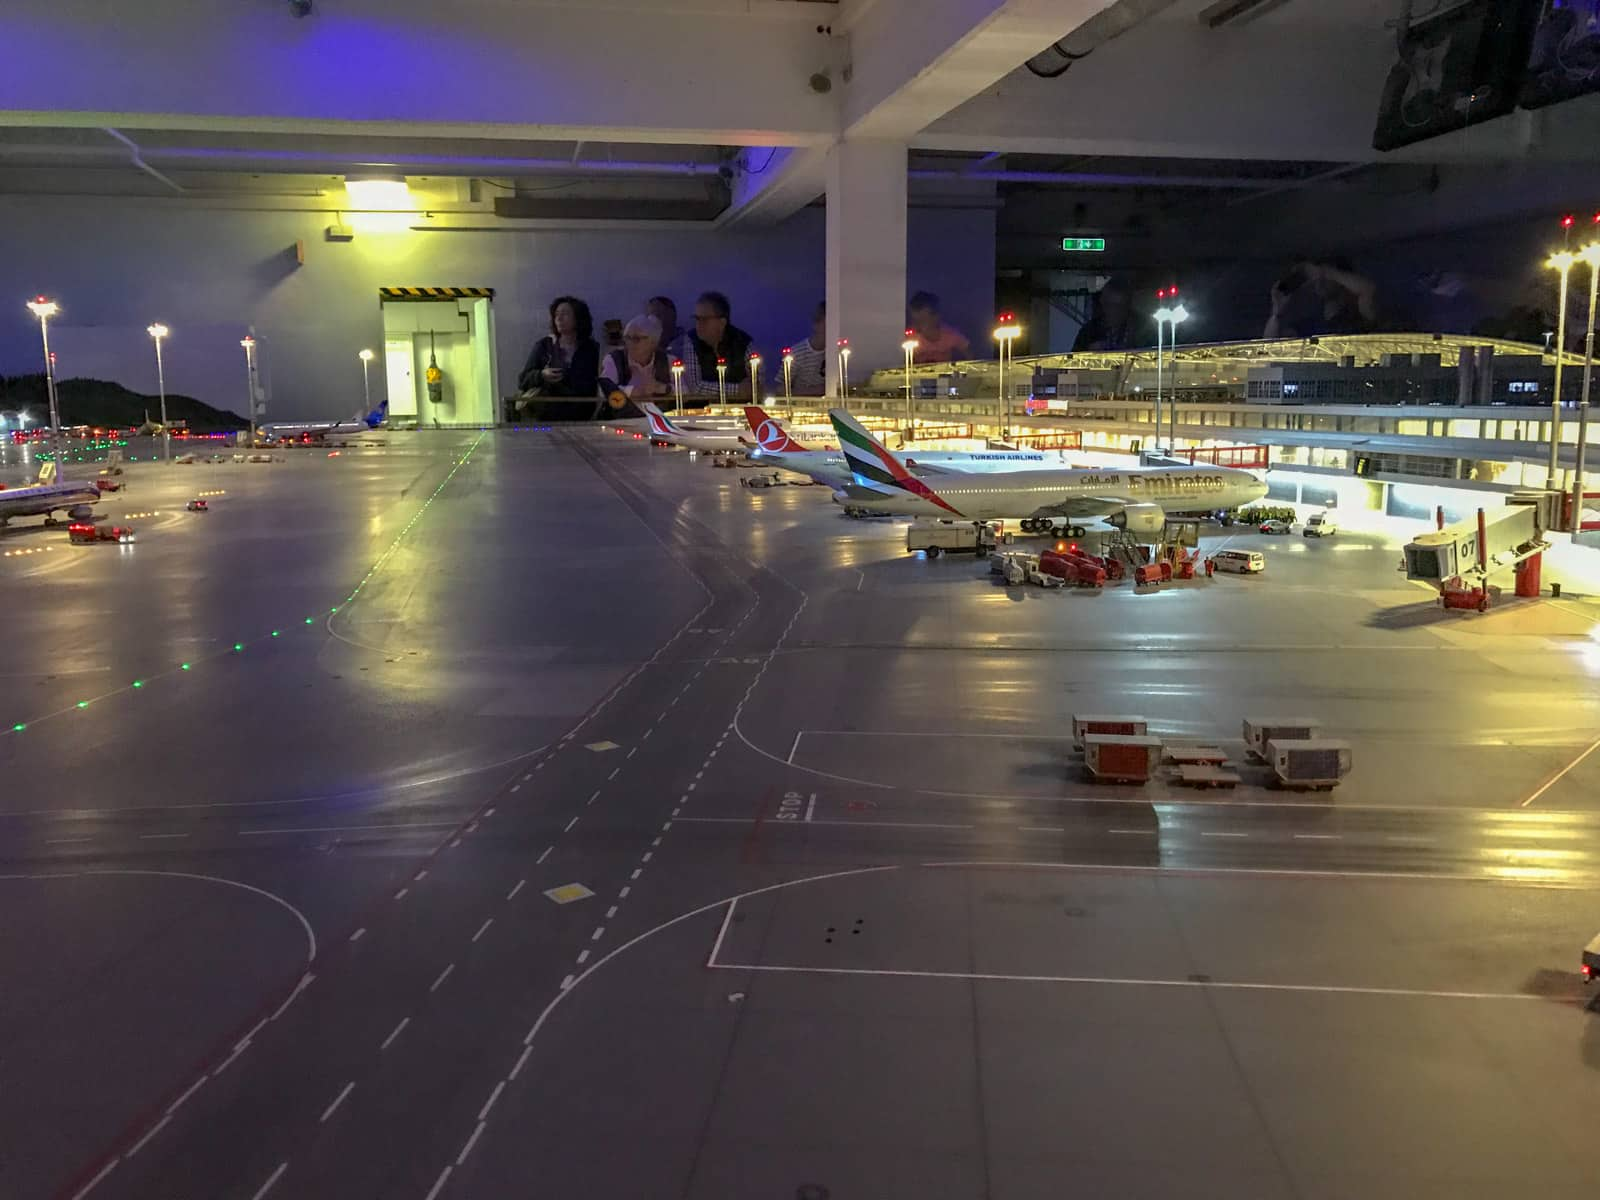 A model airport as part of an indoor model railway. The lights are off to simulate night-time